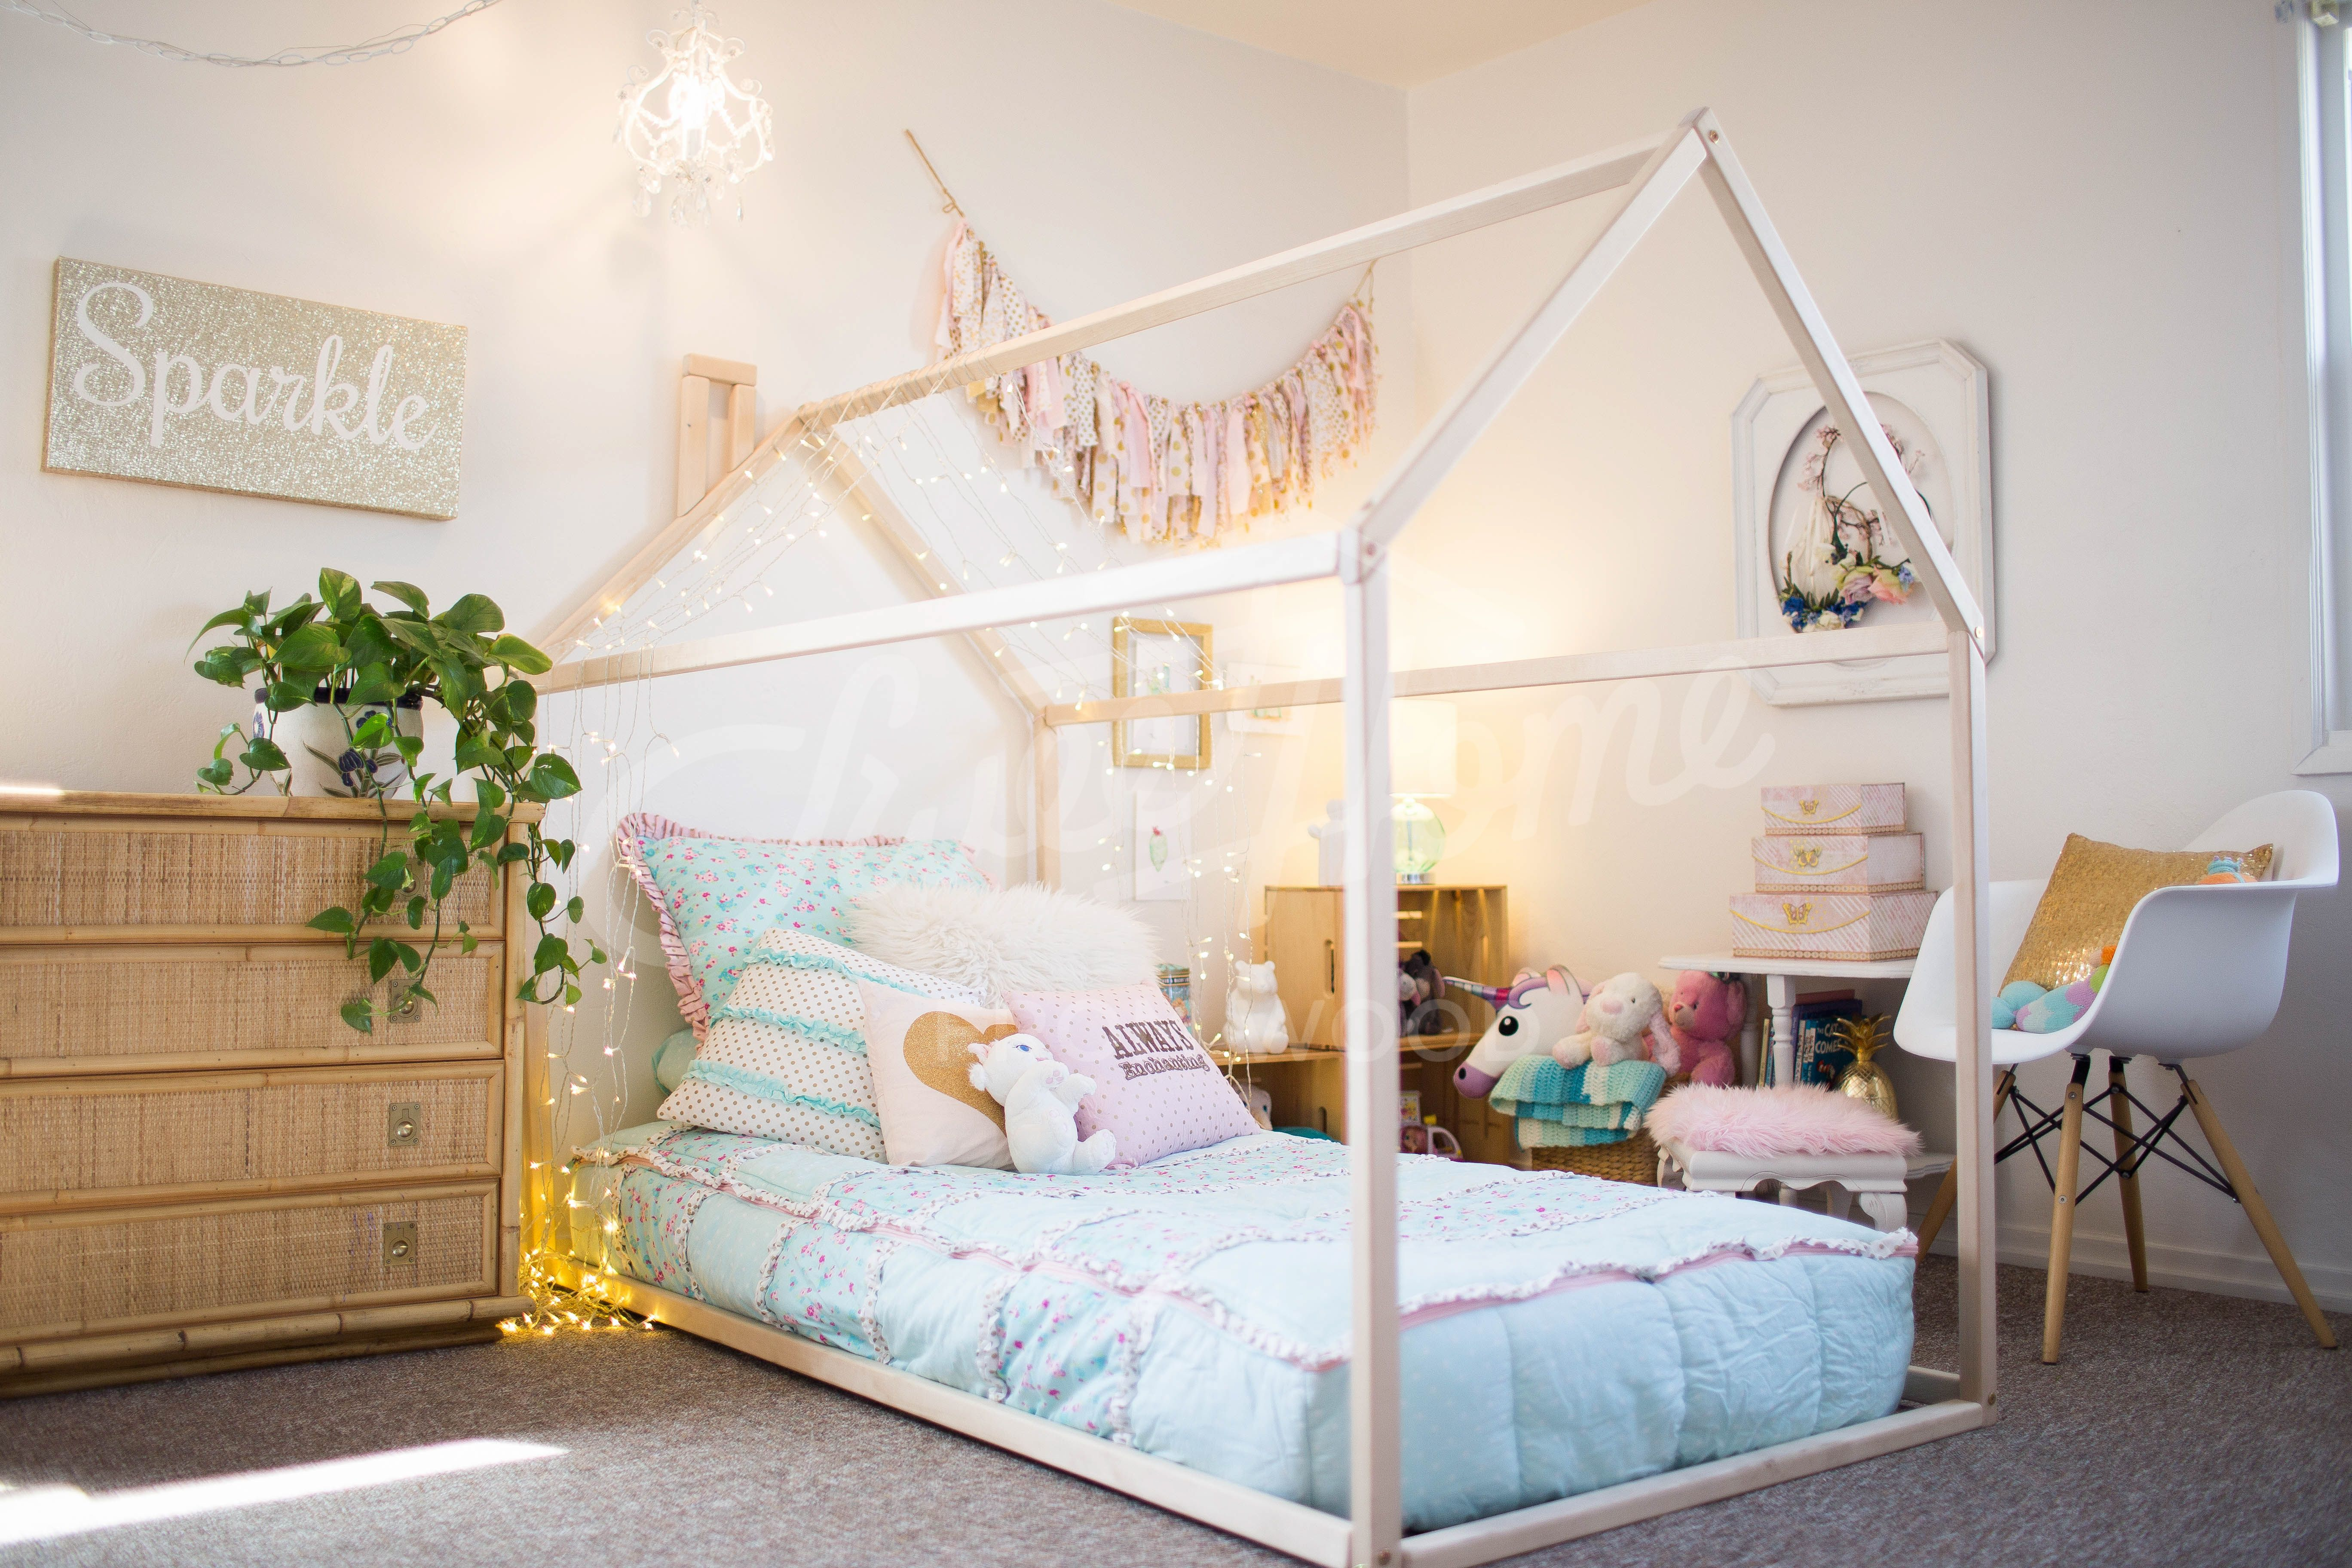 Toddler Bed Full Double Treehouse Bed House Bed Children Bed